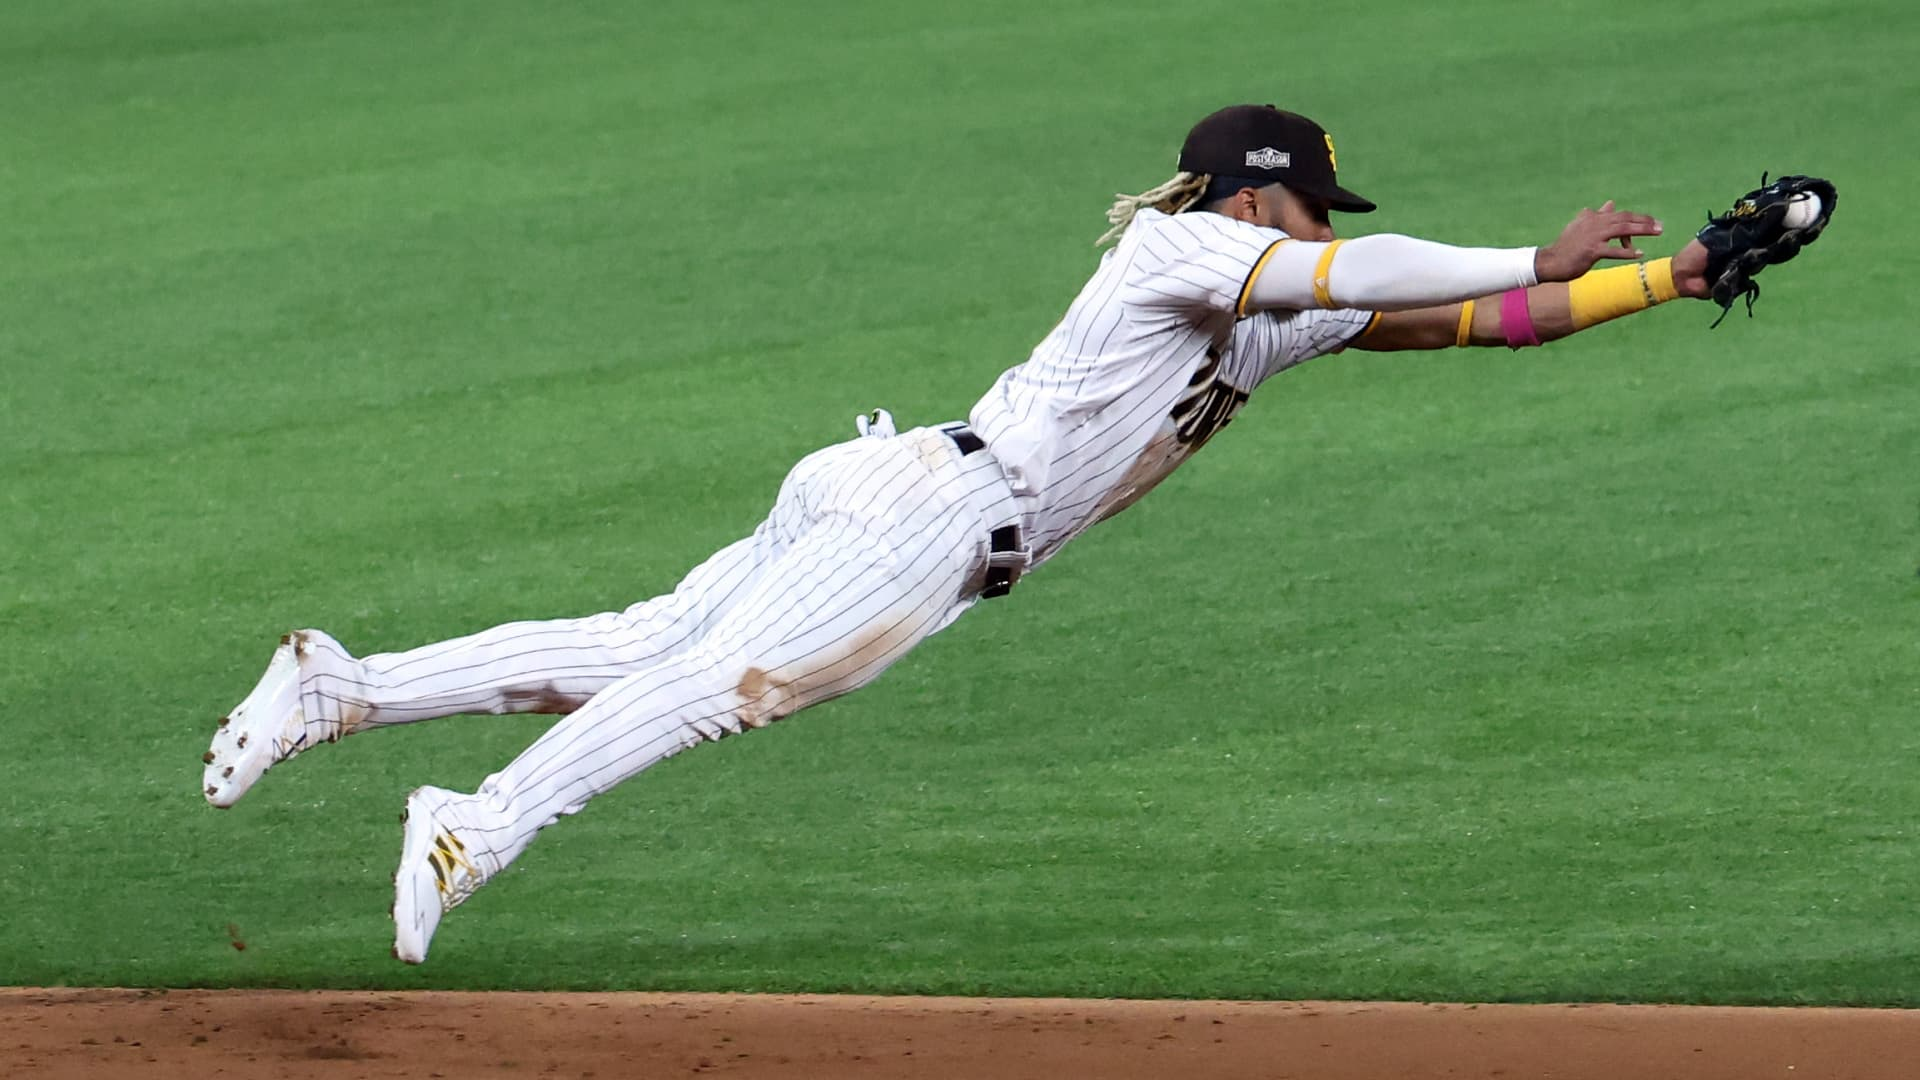 Fernando Tatis Jr. #23 of the San Diego Padres dives to cut off a ball hit by Corey Seager #5 of the Los Angeles Dodgers (not pictured) during the third inning in Game Three of the National League Division Series at Globe Life Field on October 08, 2020 in Arlington, Texas.